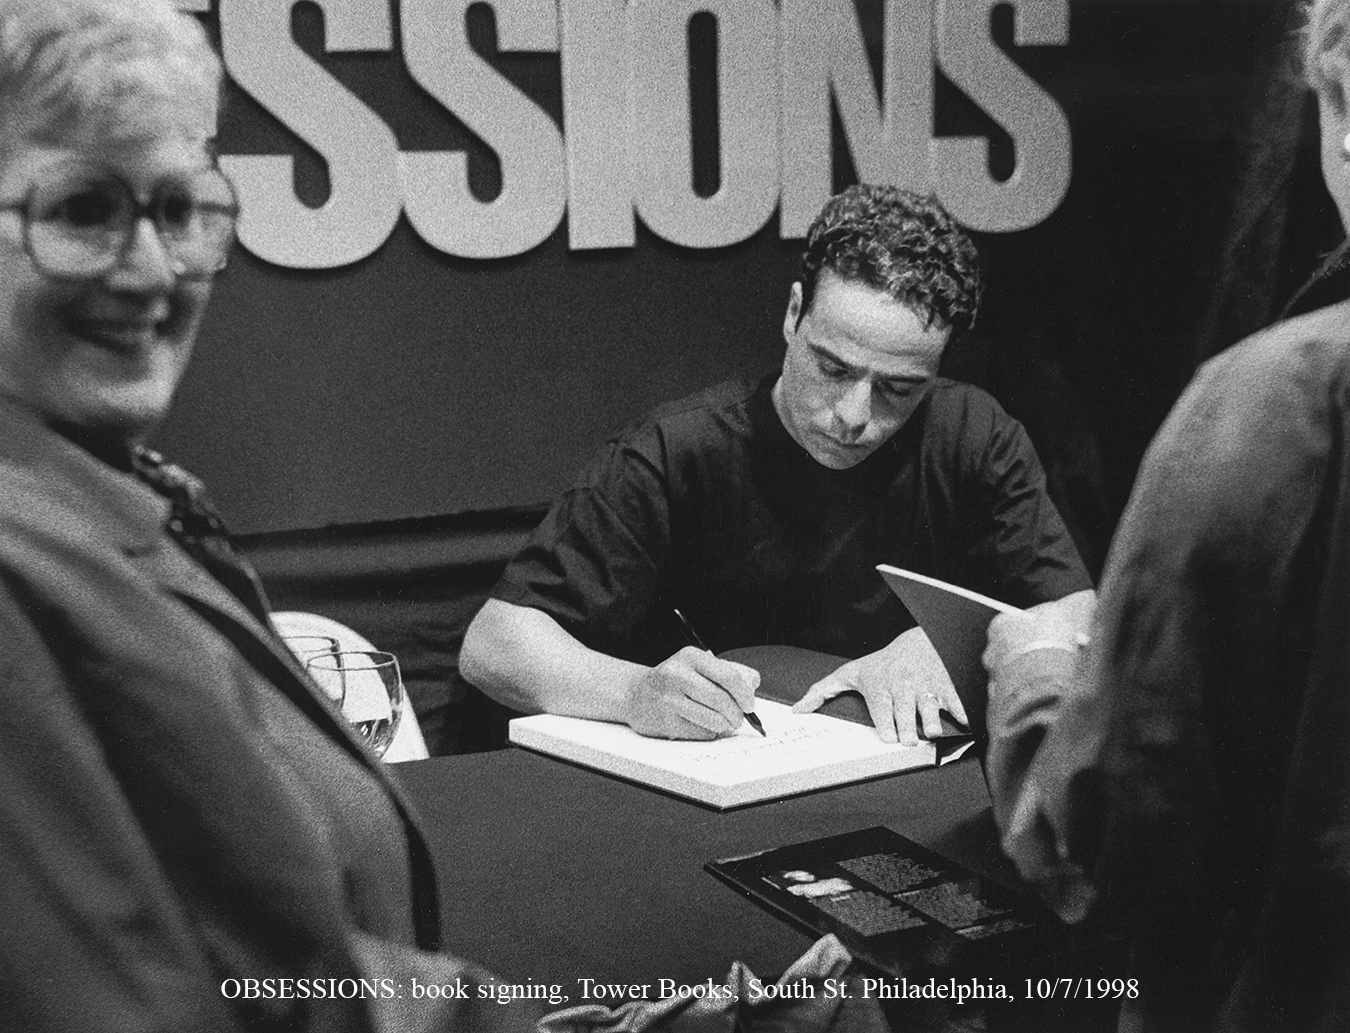 Tony_Book_Signing_Tower_Records_South_street_philadelphia_1998